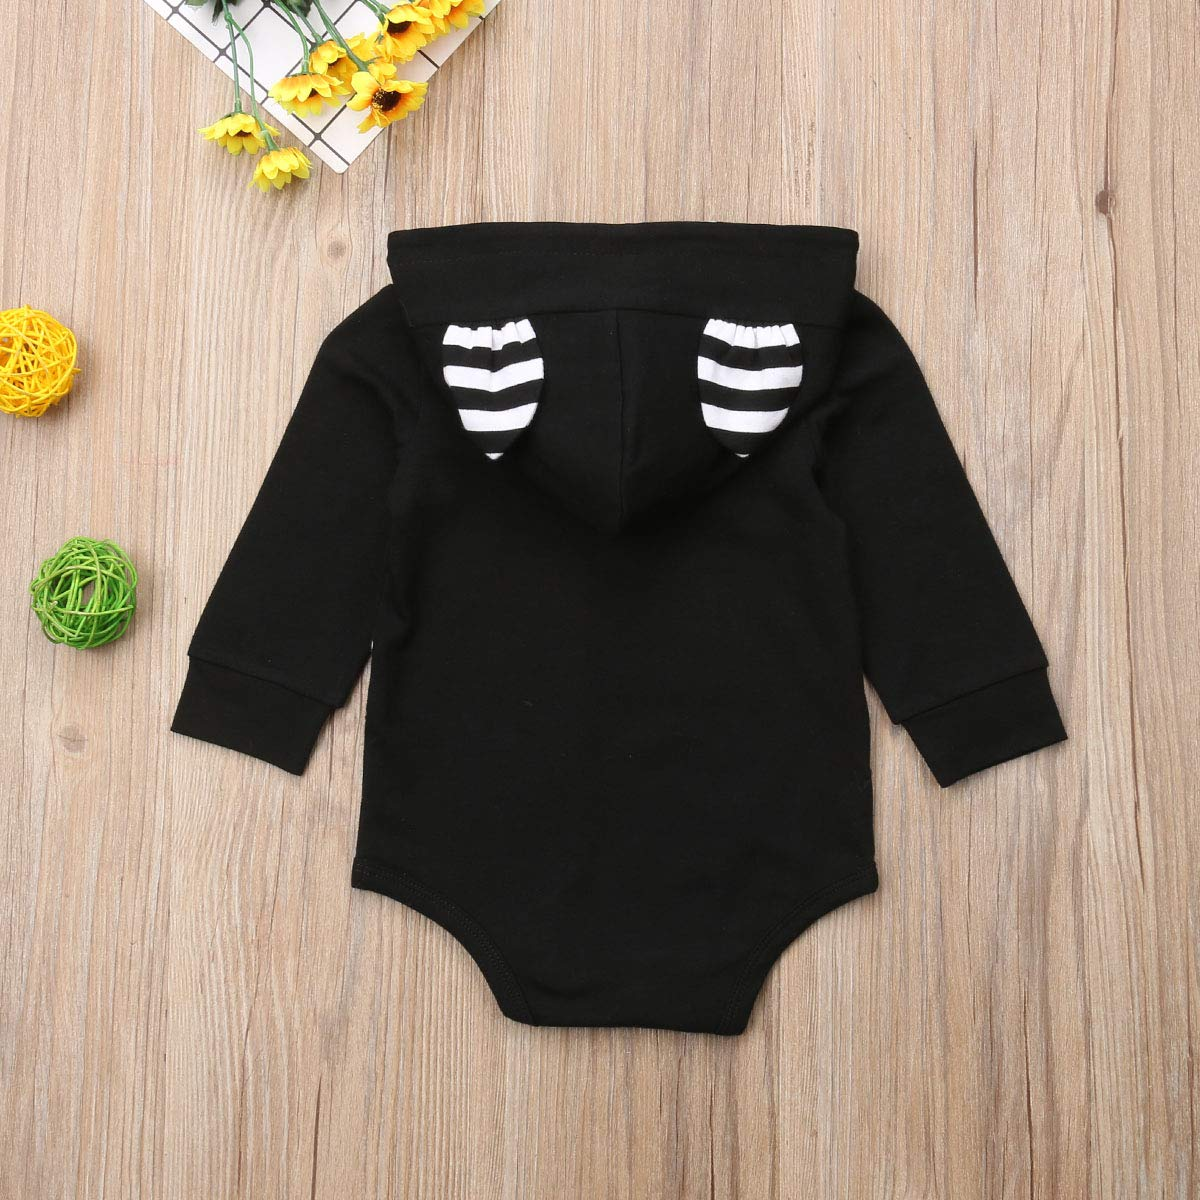 Baby Girl Boy Clothes Top Hoodie Pocket Bodysuit Romper Long Sleeves Outfit Clothing